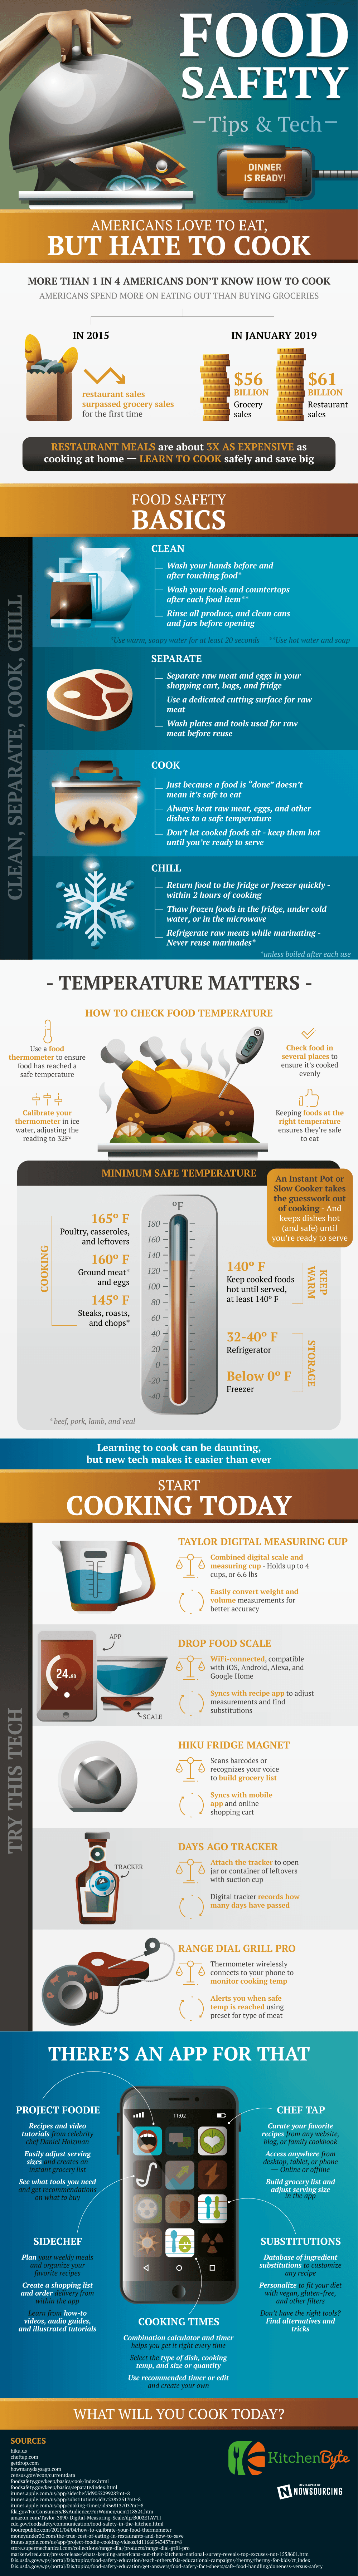 Food Safety Tips for Your Commercial Kitchen Infographic